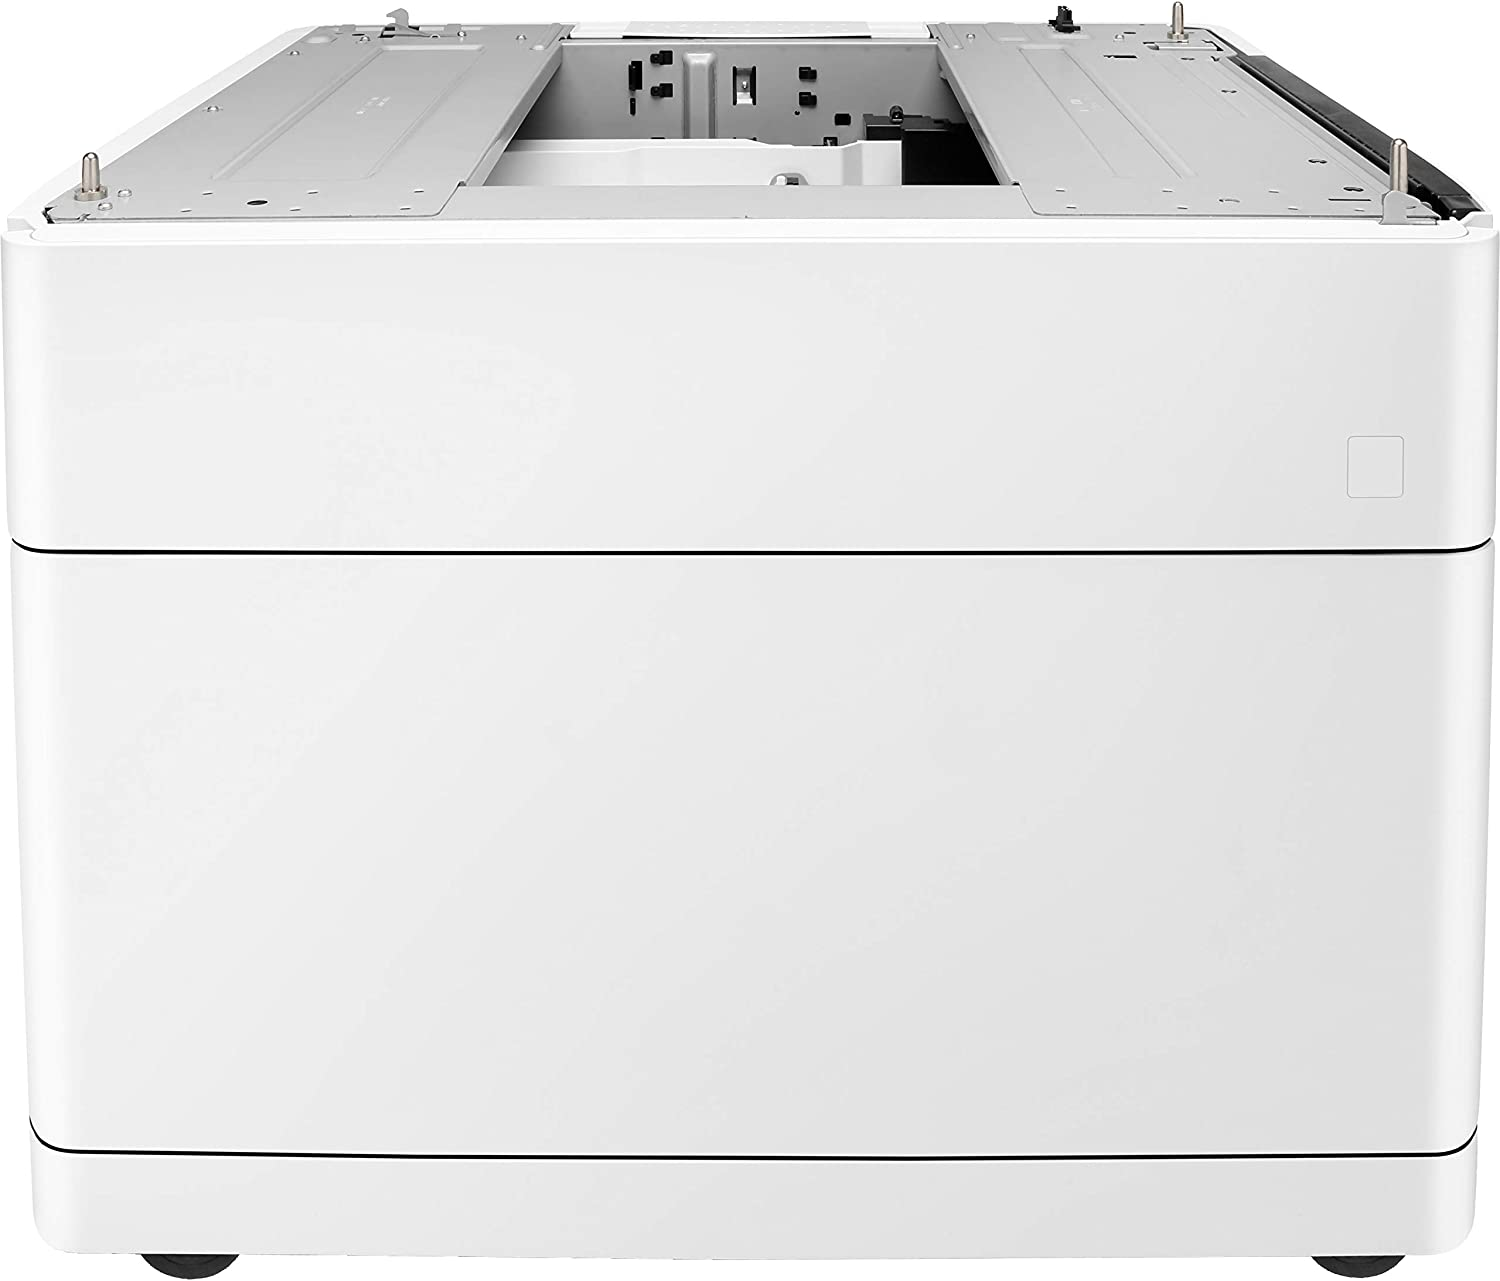 HP W1B50A PageWide 550-sheet Paper Tray Stand Printer Accessory